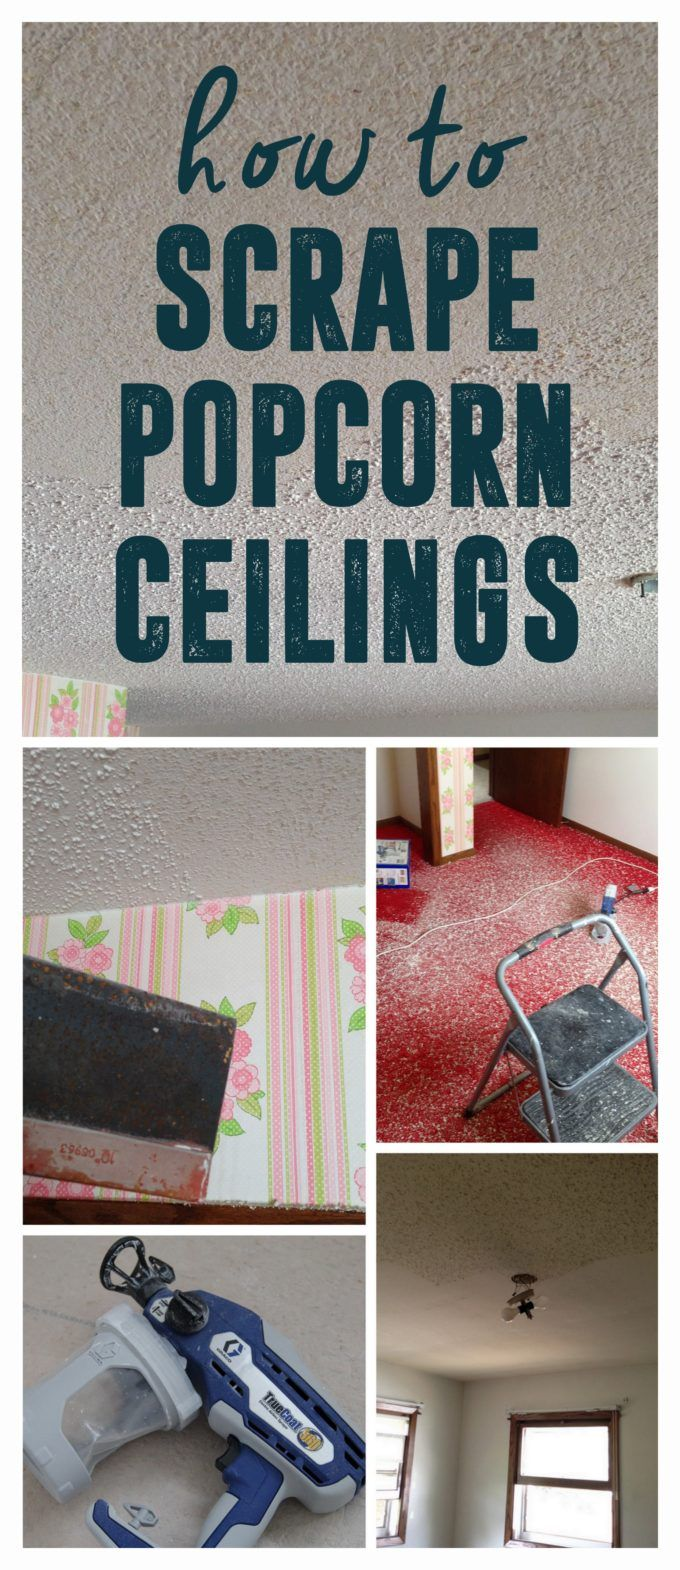 Tips and Tricks for Scraping Popcorn Ceilings, How to Scrape Popcorn Ceilings www.BrightGreenDoor.com